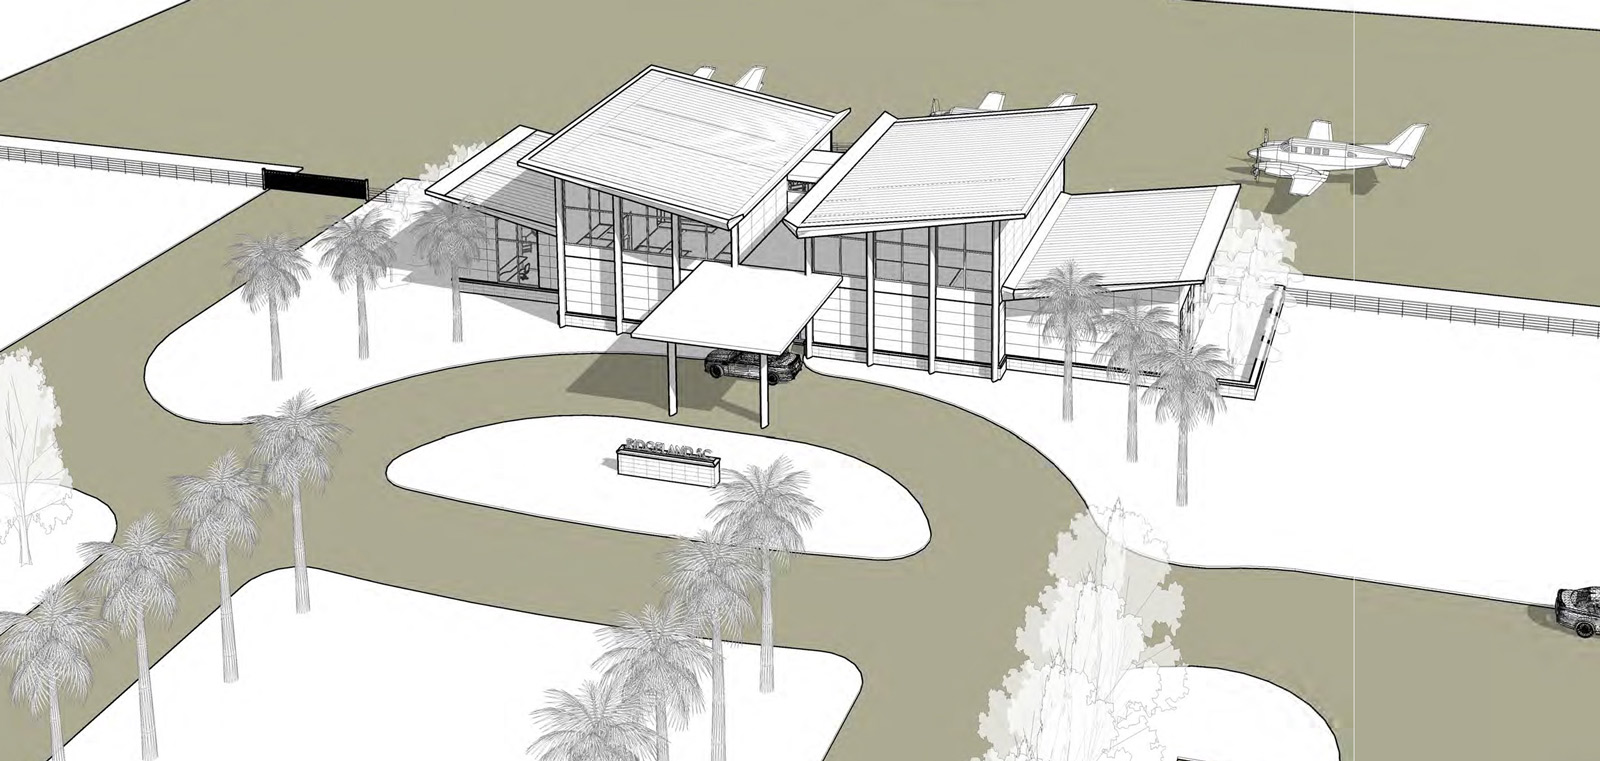 NEW TERMINAL BUILDING PROPOSED TERMINAL RIDGELAND-CLAUDE DEAN AIRPORT (3J1)